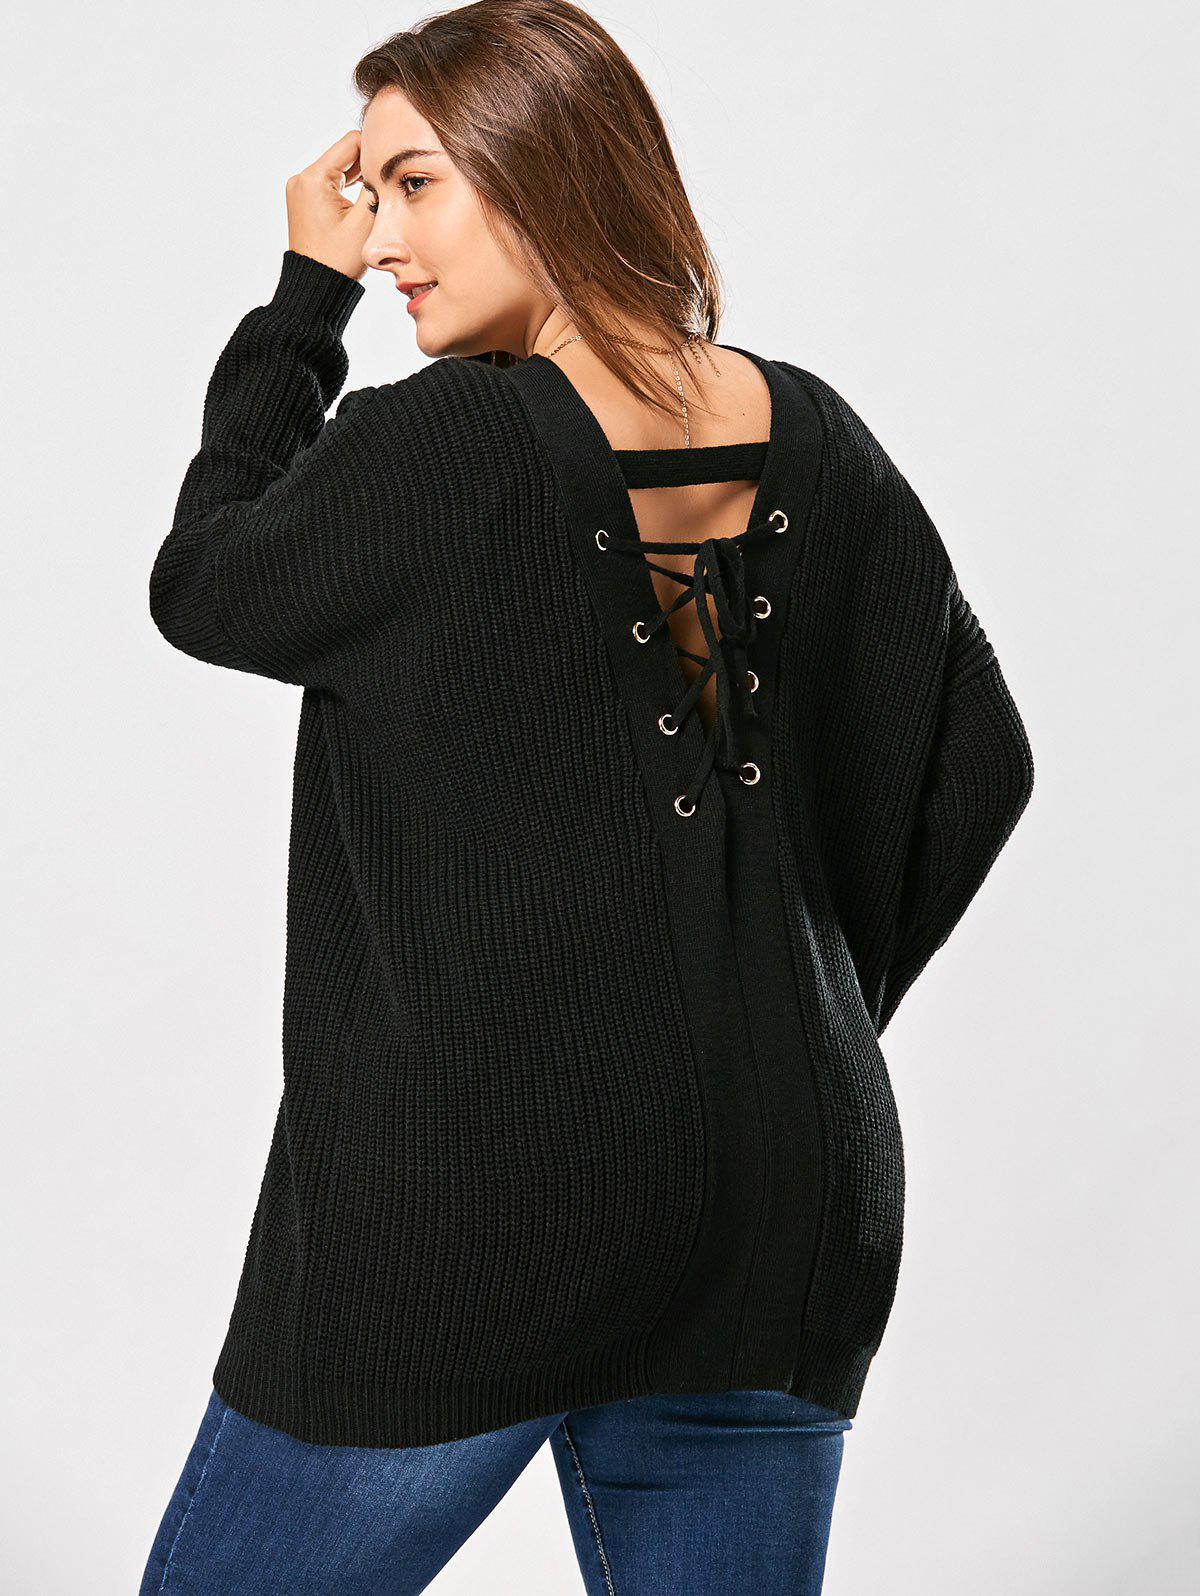 V Neck Back Lace Up Plus Size Sweater - BLACK 3XL